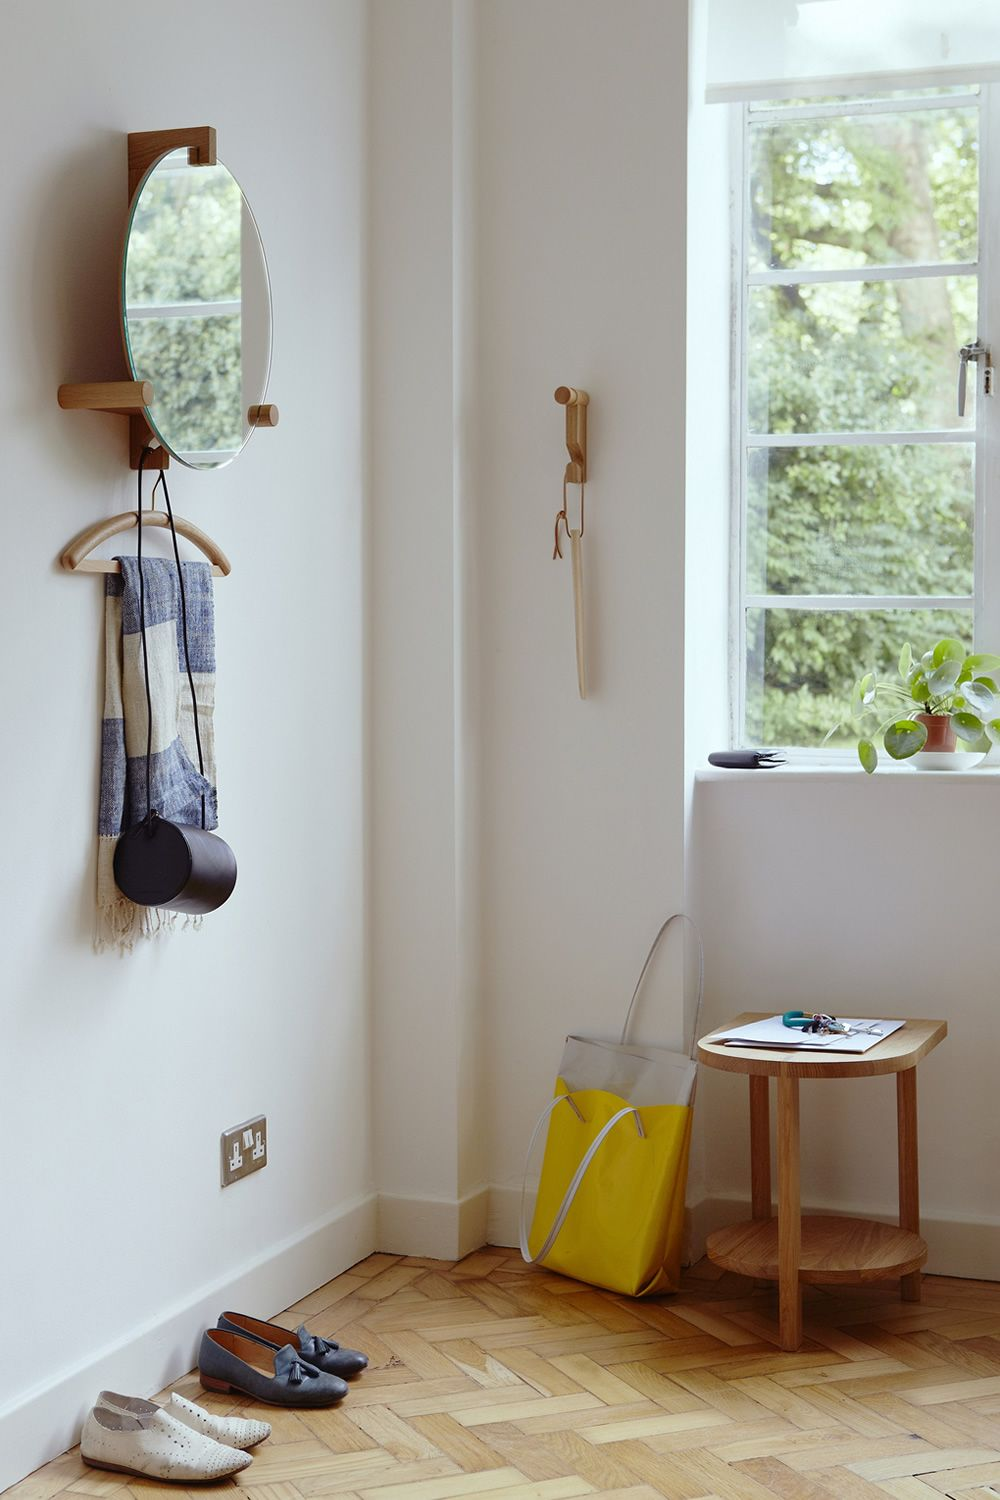 Mirror with coat hook and shelf